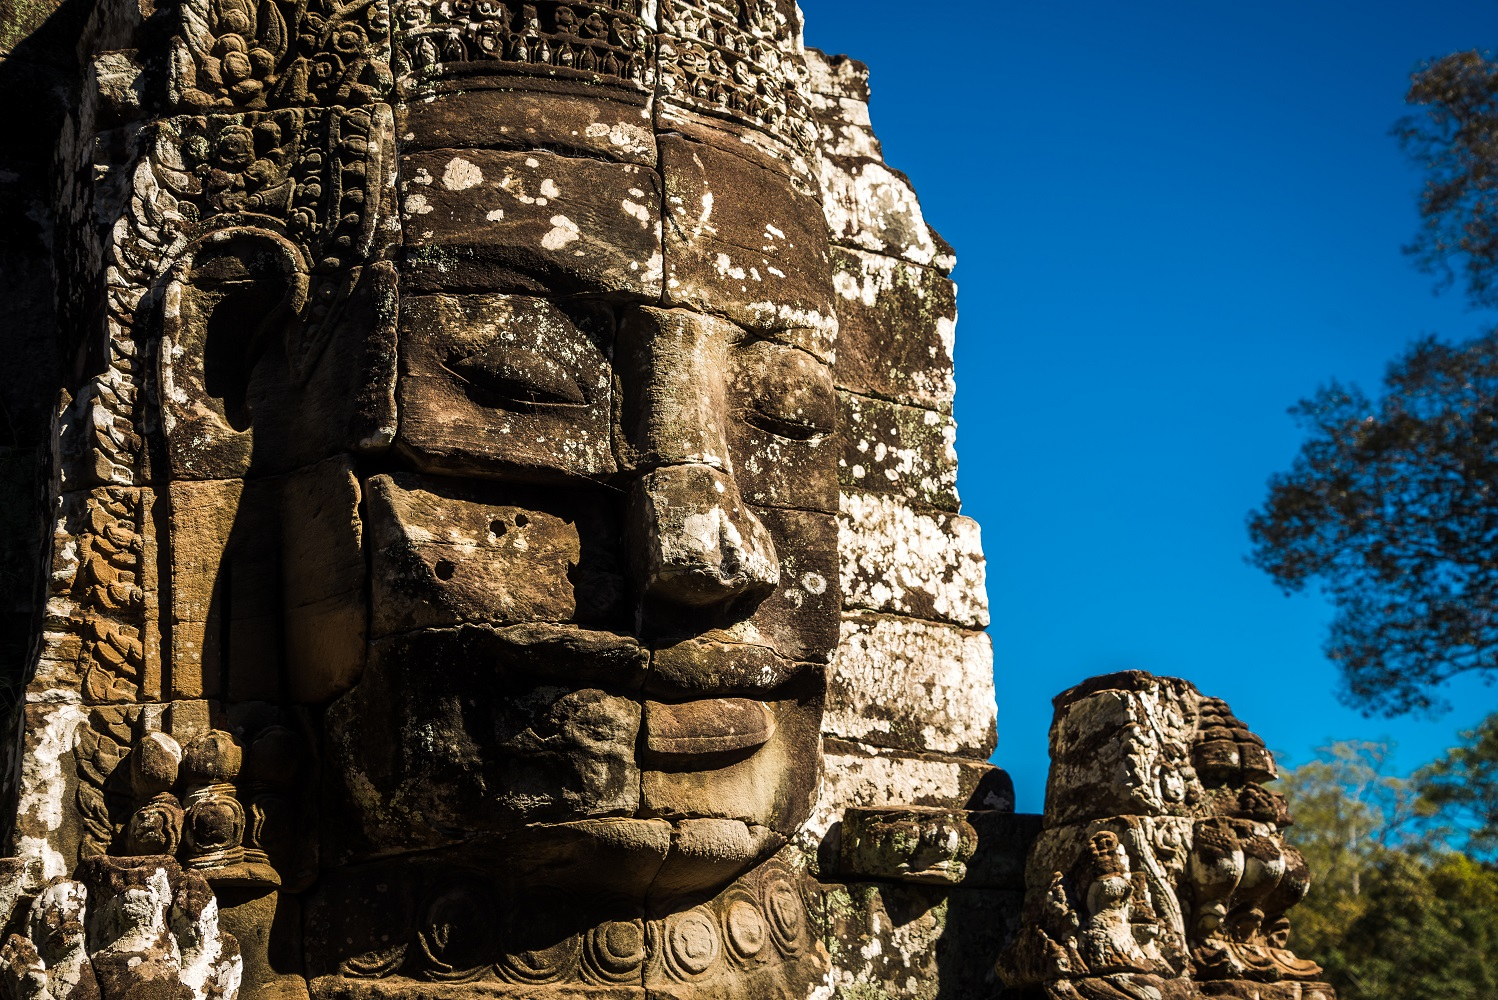 One of many faces at Bayon